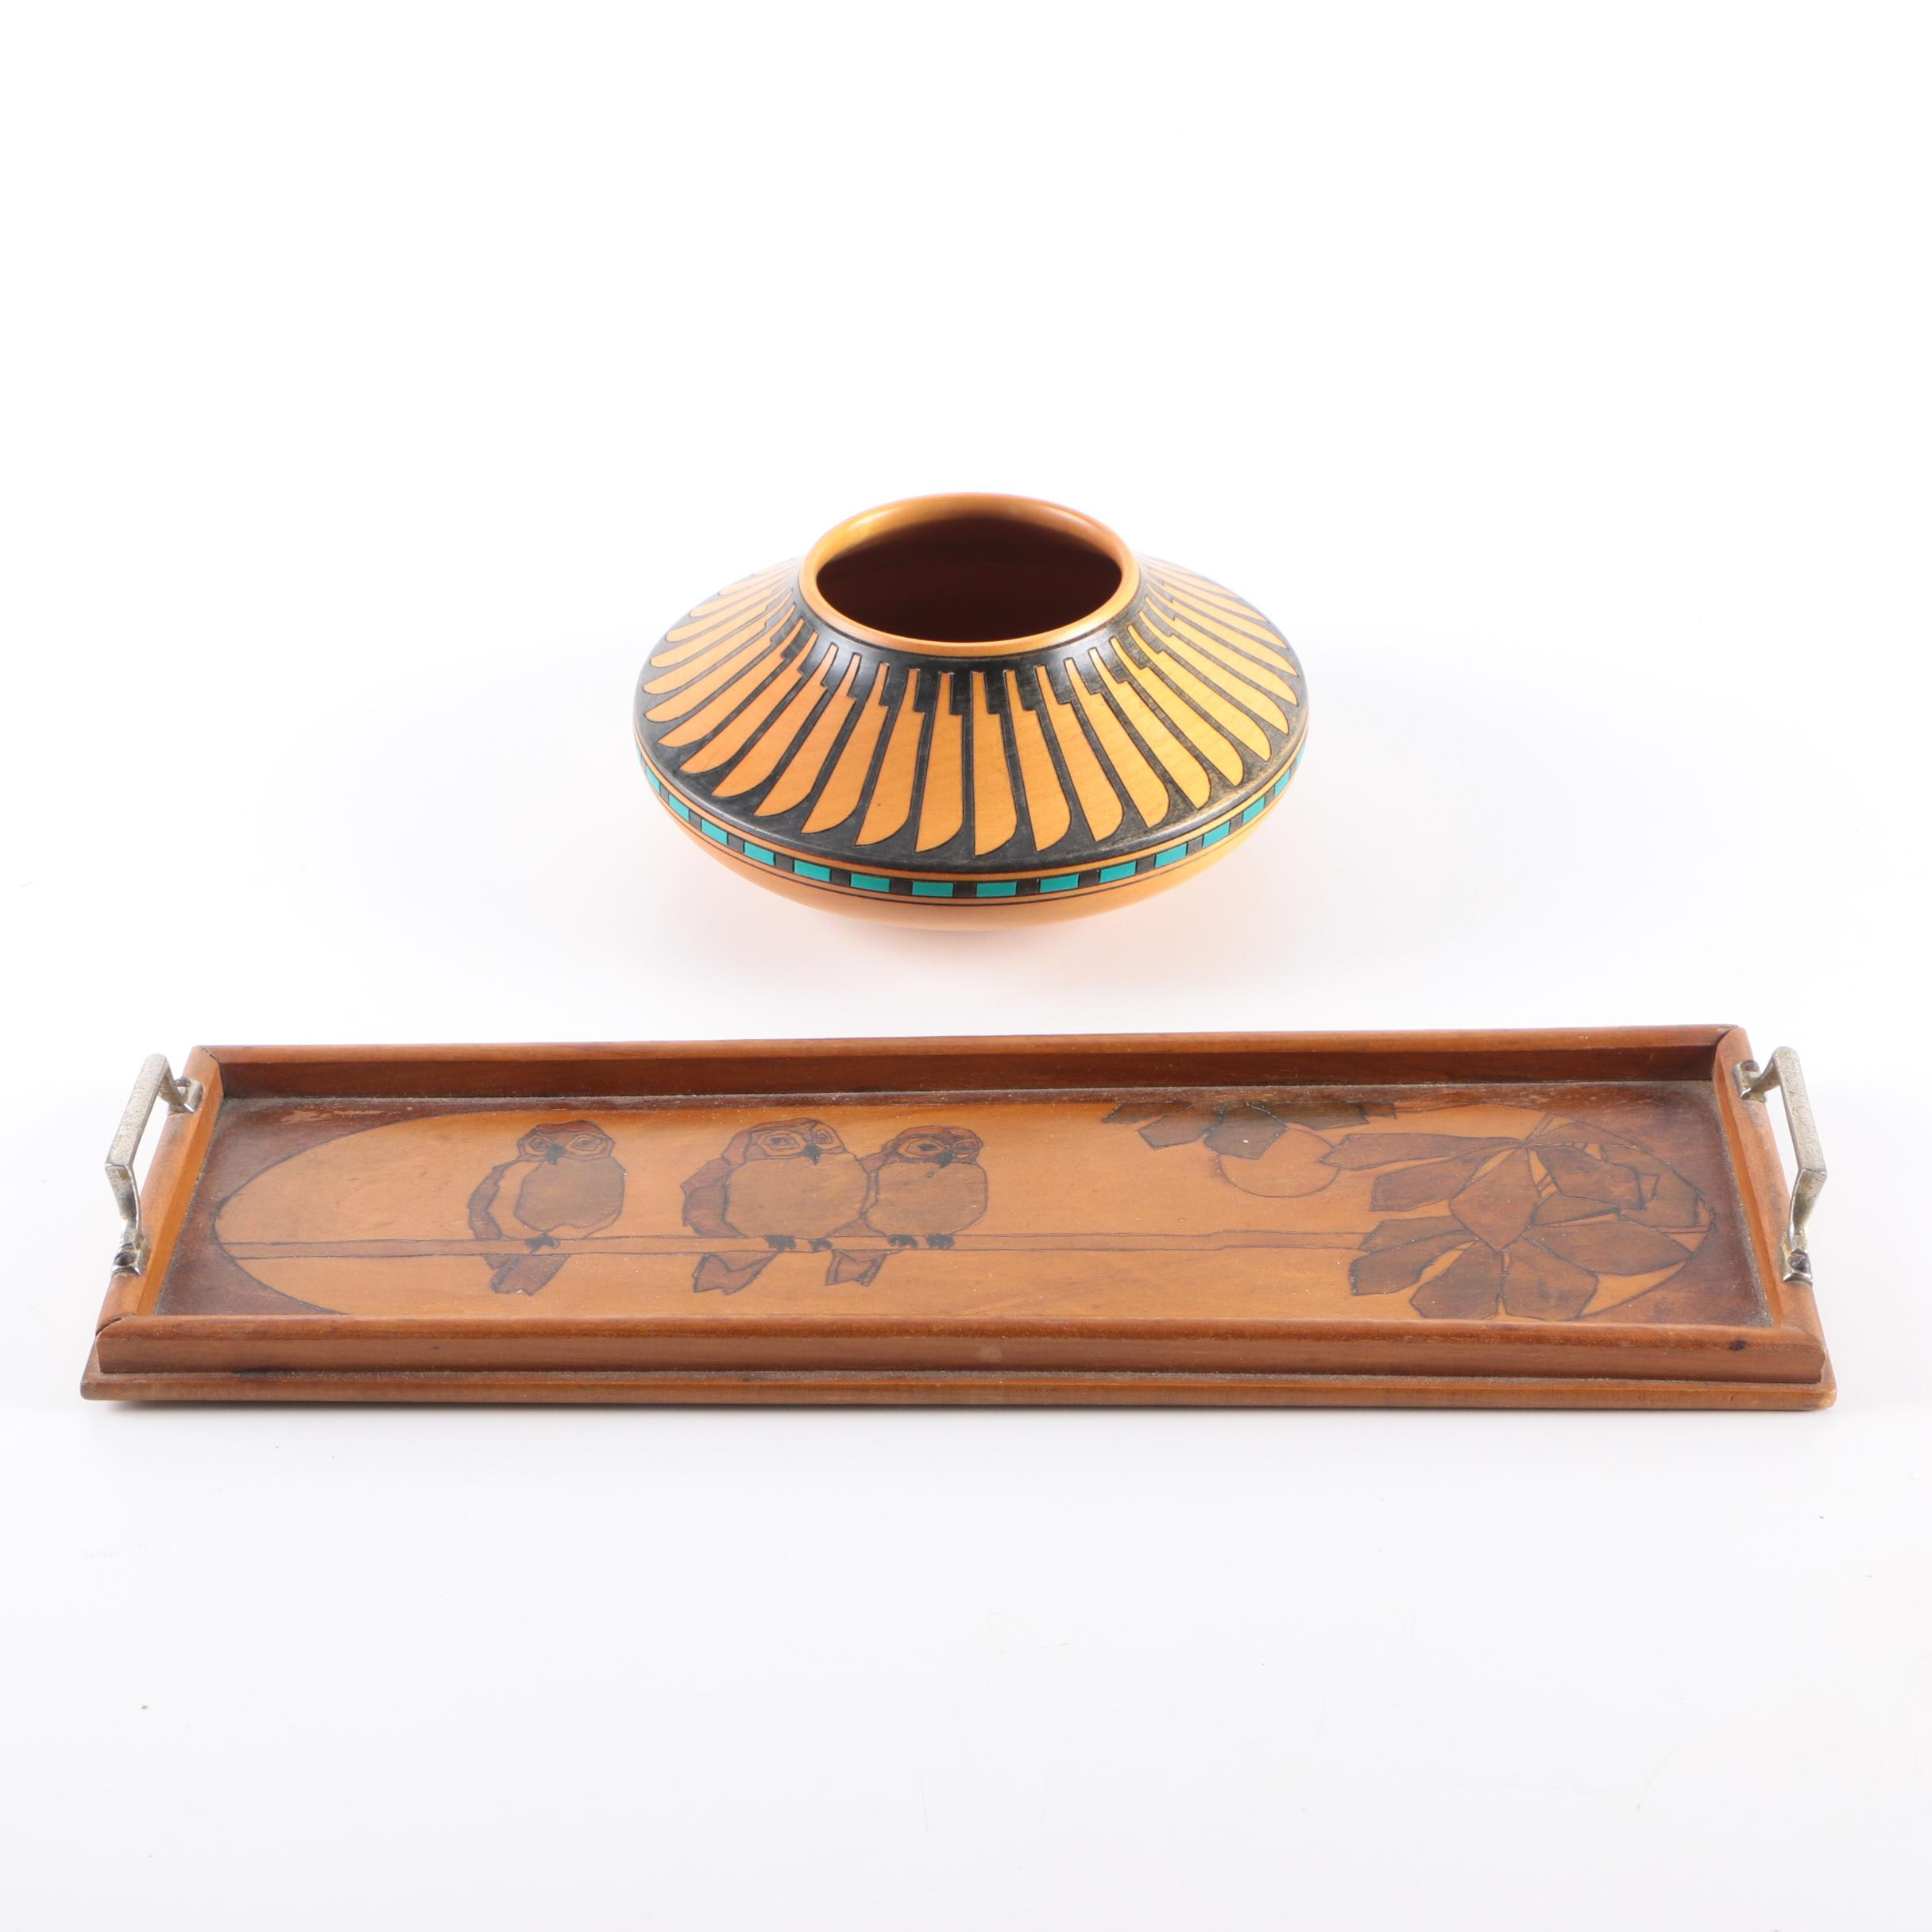 Hand Carved Wooden Tray and Klaus Stange Alder Wood Bowl